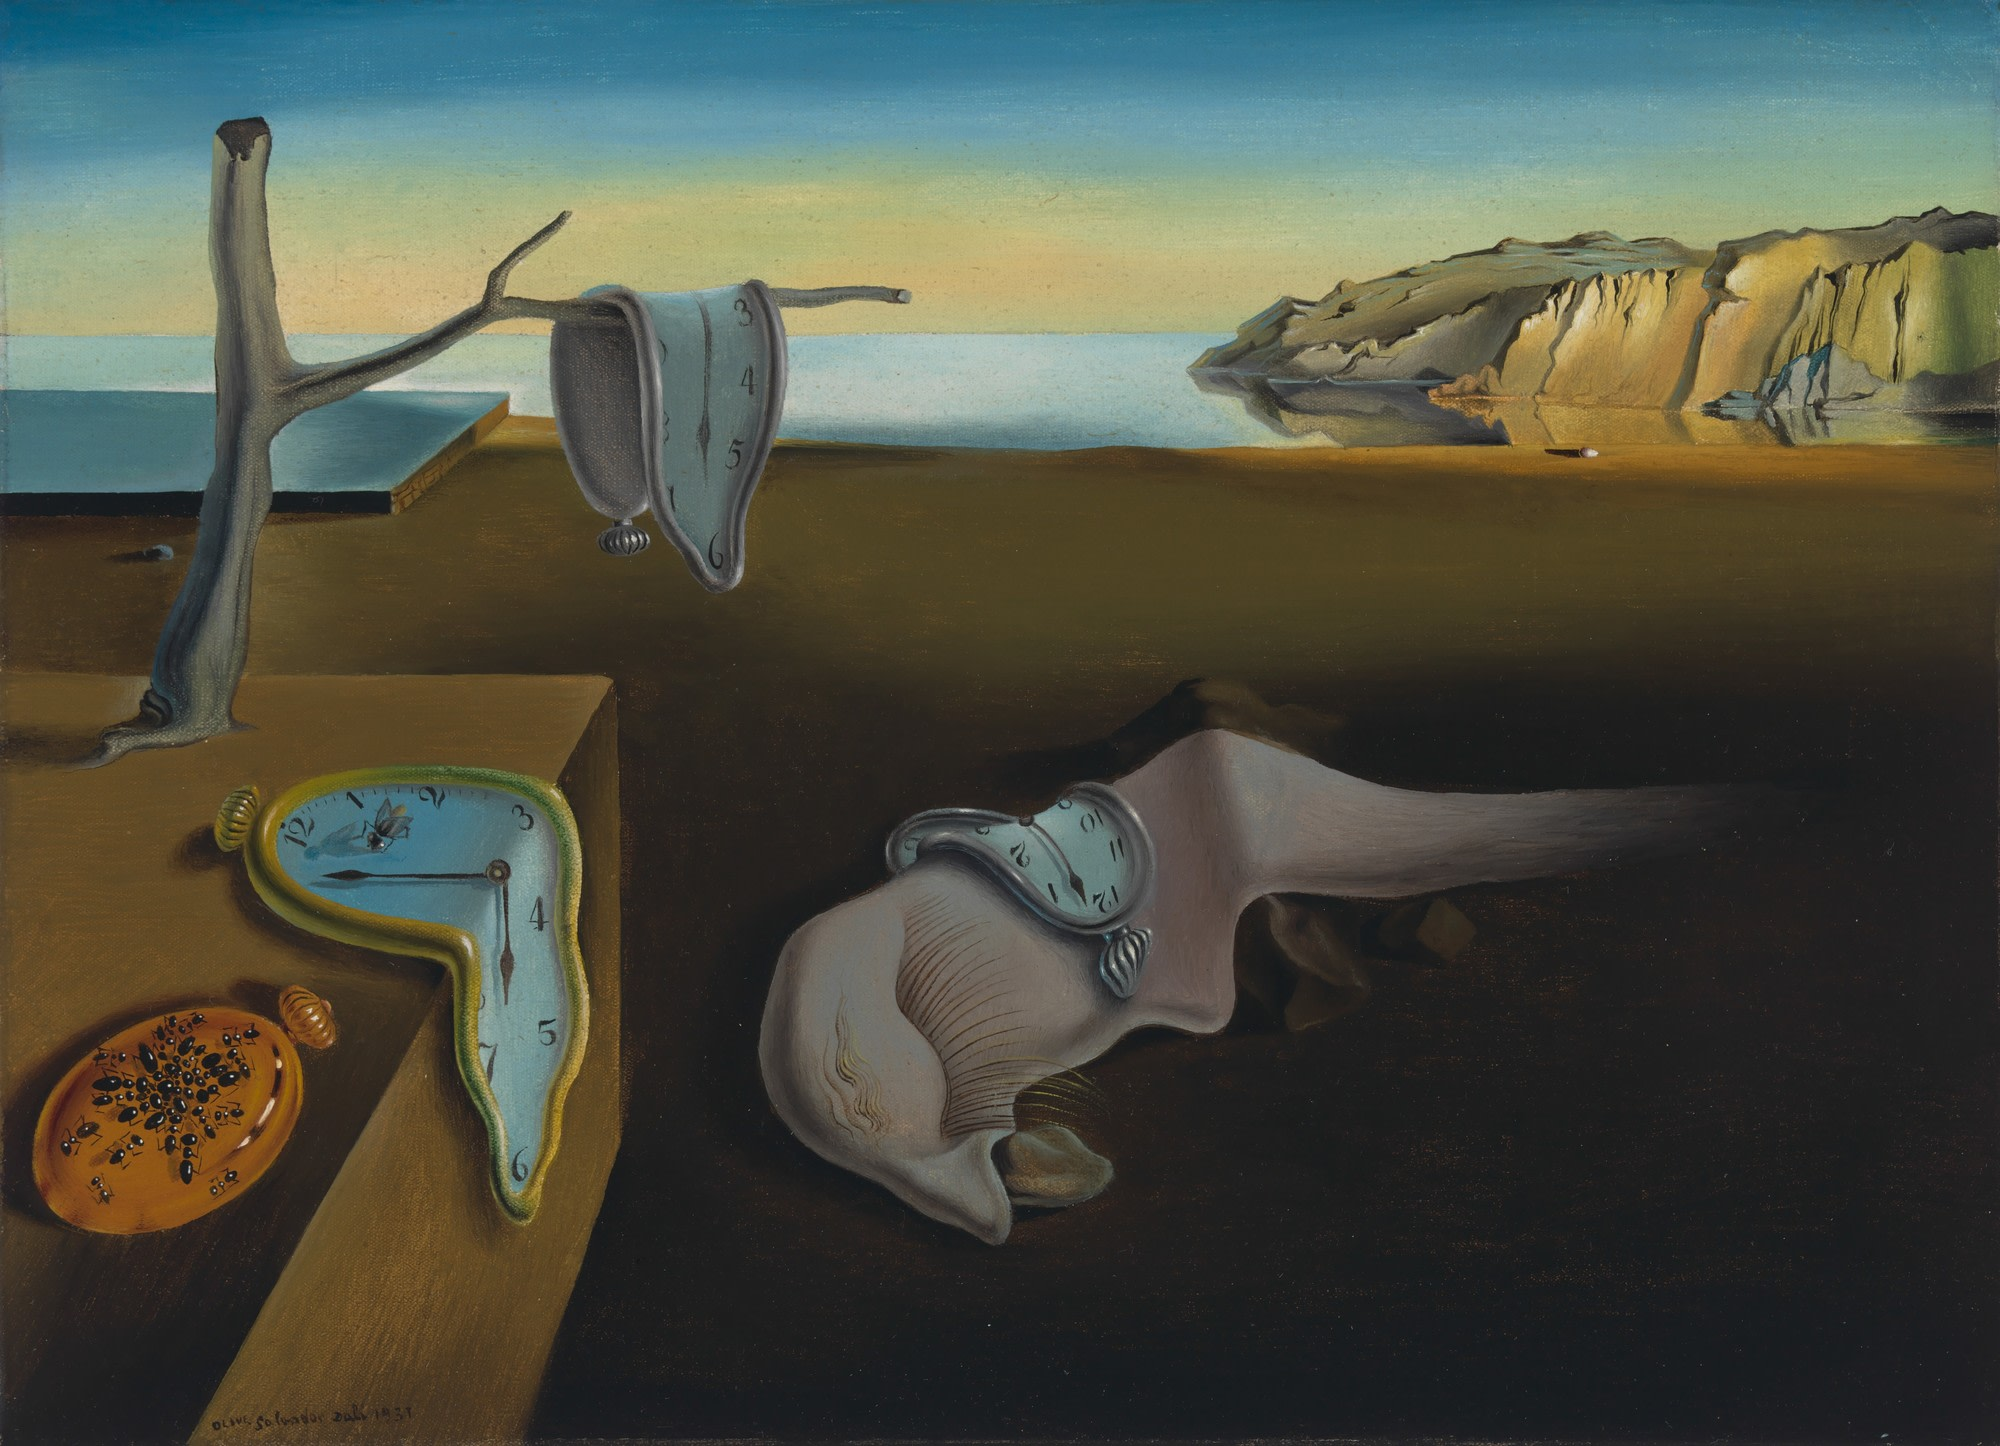 Dalí's The Persistence of Memory (1931) | Source: moma.org